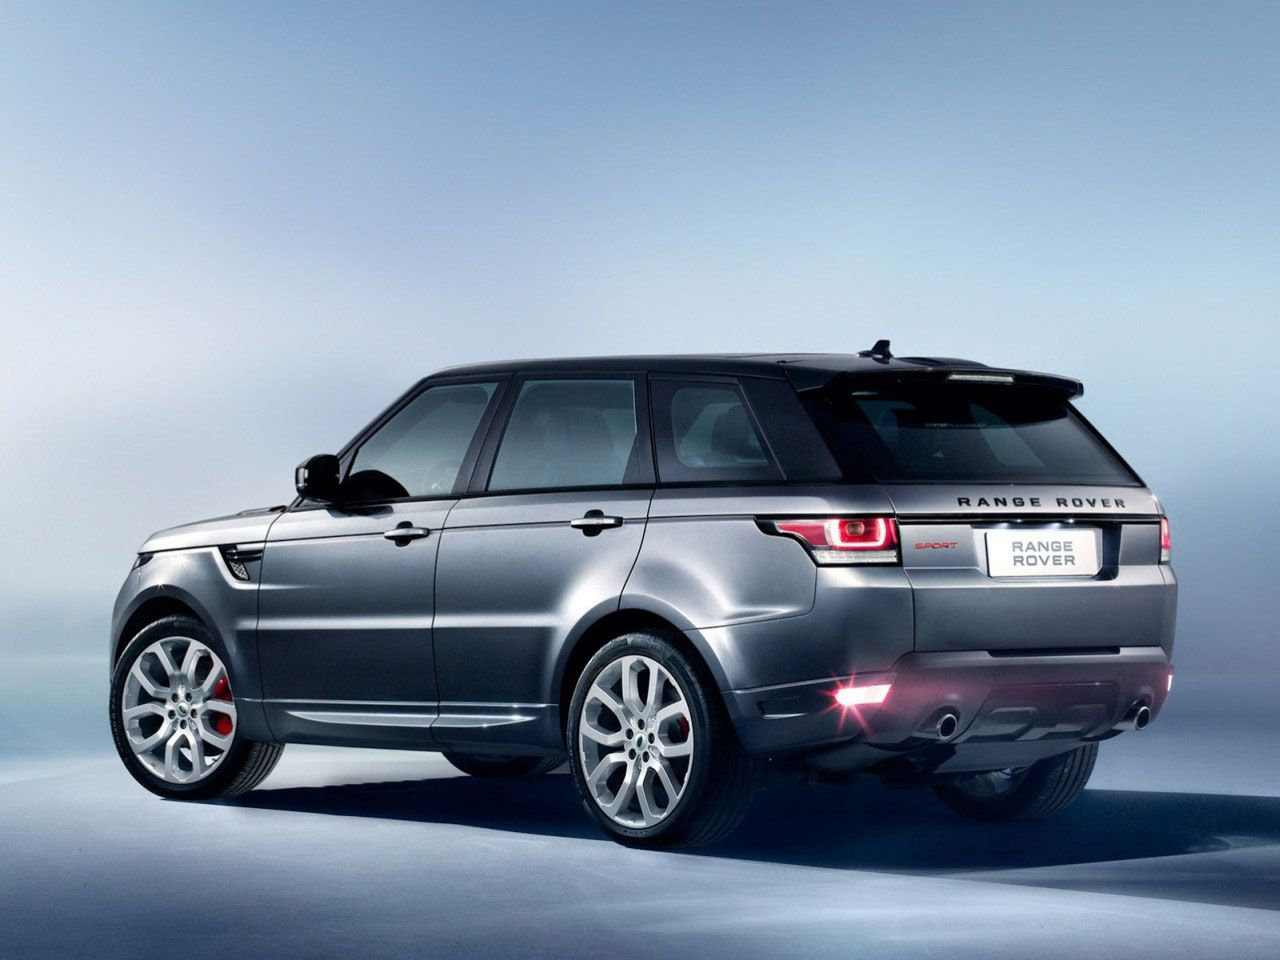 The Range Rover SPORT, NICE! (With images) New range